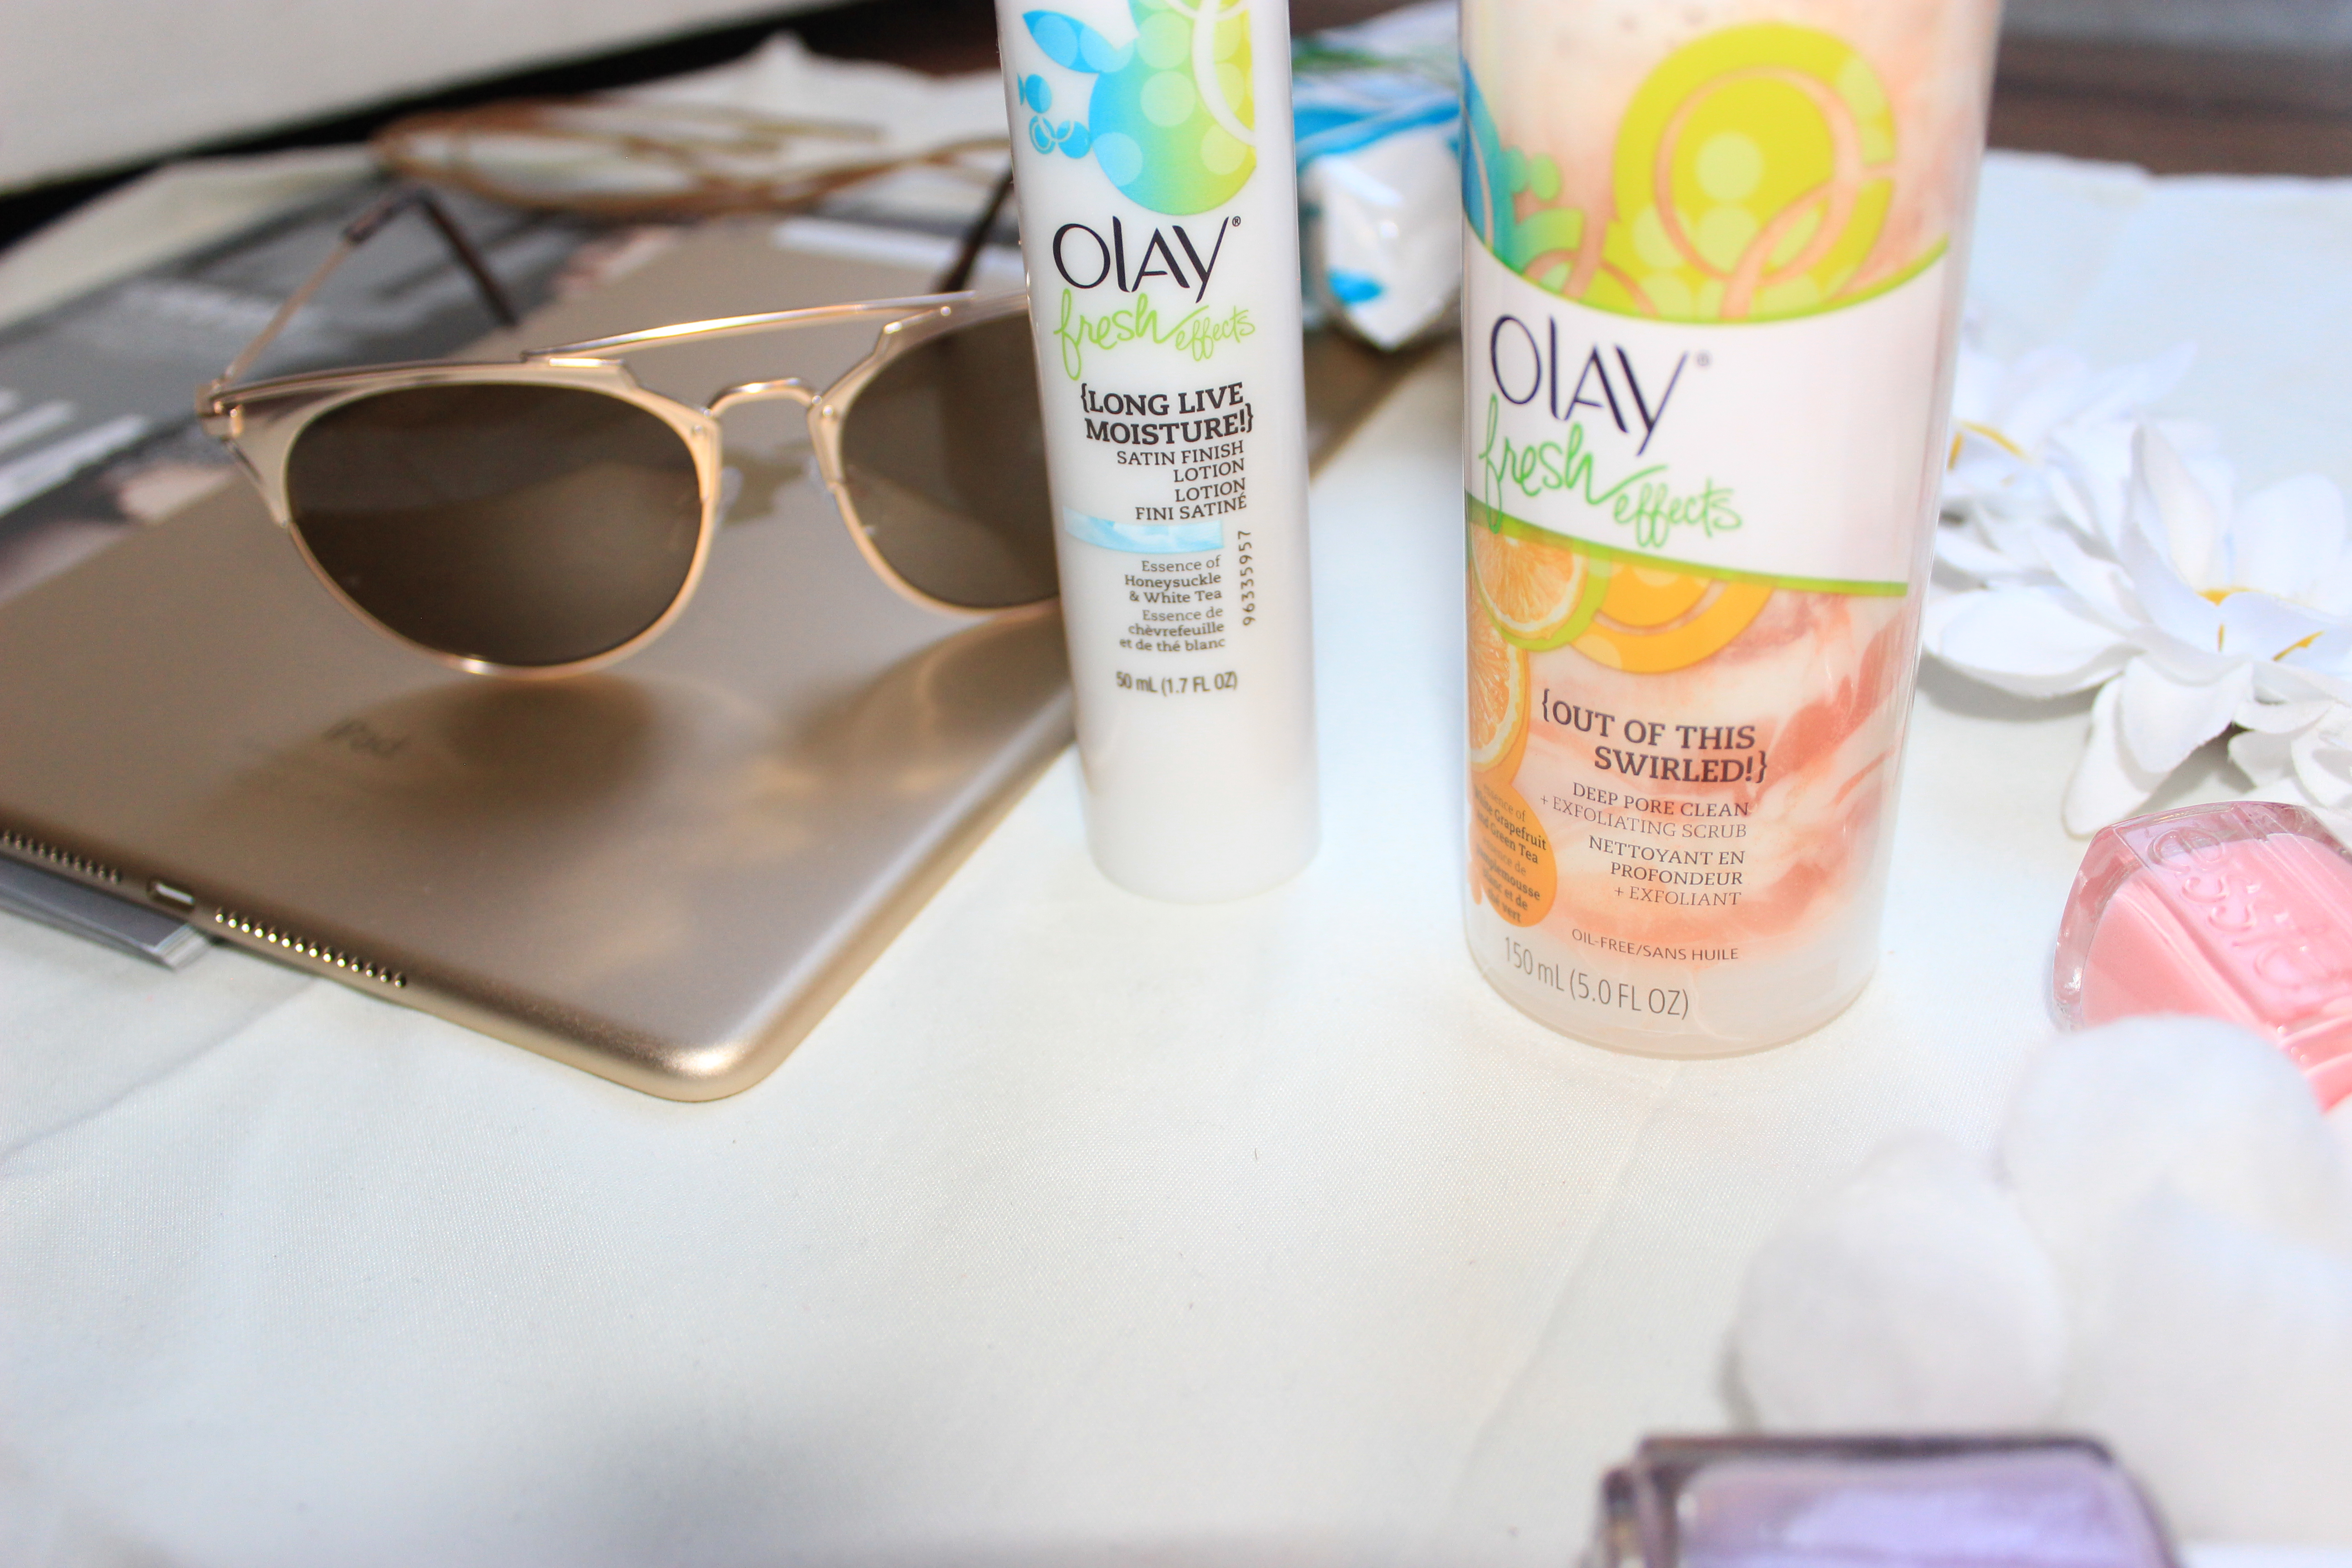 Friday-favorites-Fresh-Effects-SWipe-Out- Refreshing-Makeup-Shine-Shine-Go-Away  -Cleanser-Olay-Fresh-Effects-Out-of-This-Swirled-Scrub-Olay-Fresh-Effects-Dew-Over-Hydrating-Gel-Olay-Fresh-Effects- Long- Live Moisture-Oohlalablog-4